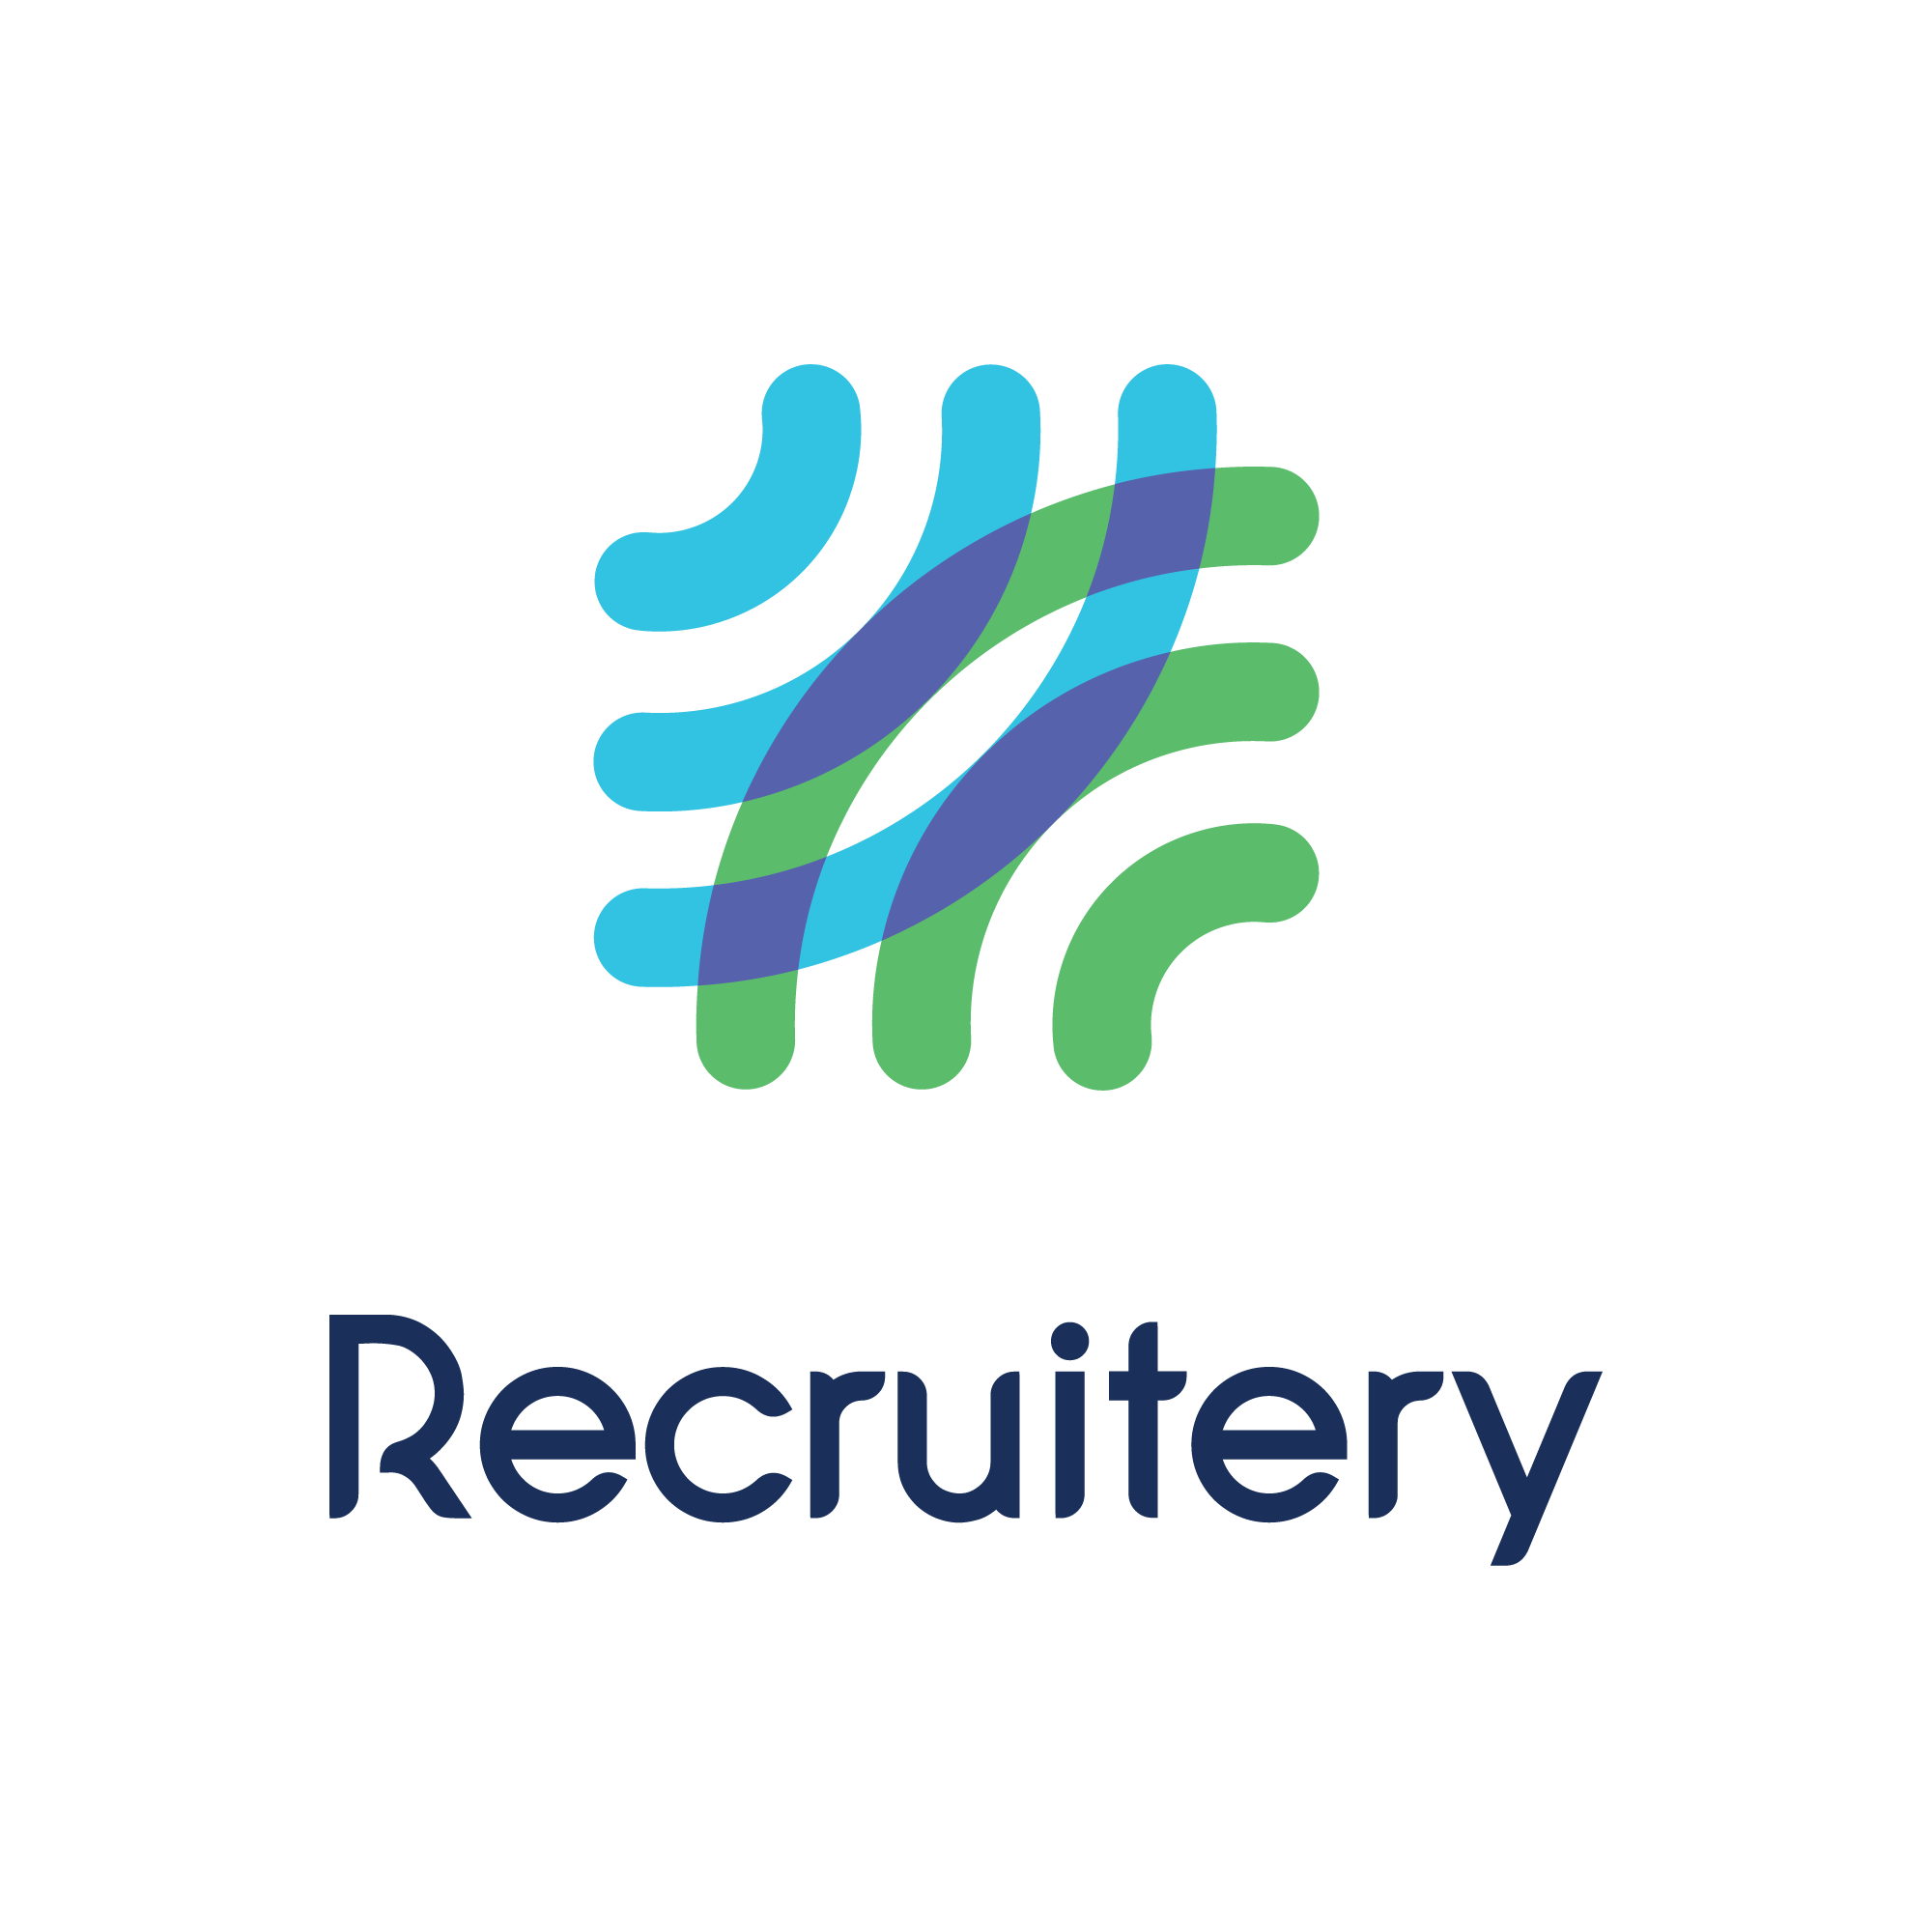 Recruitment delivery